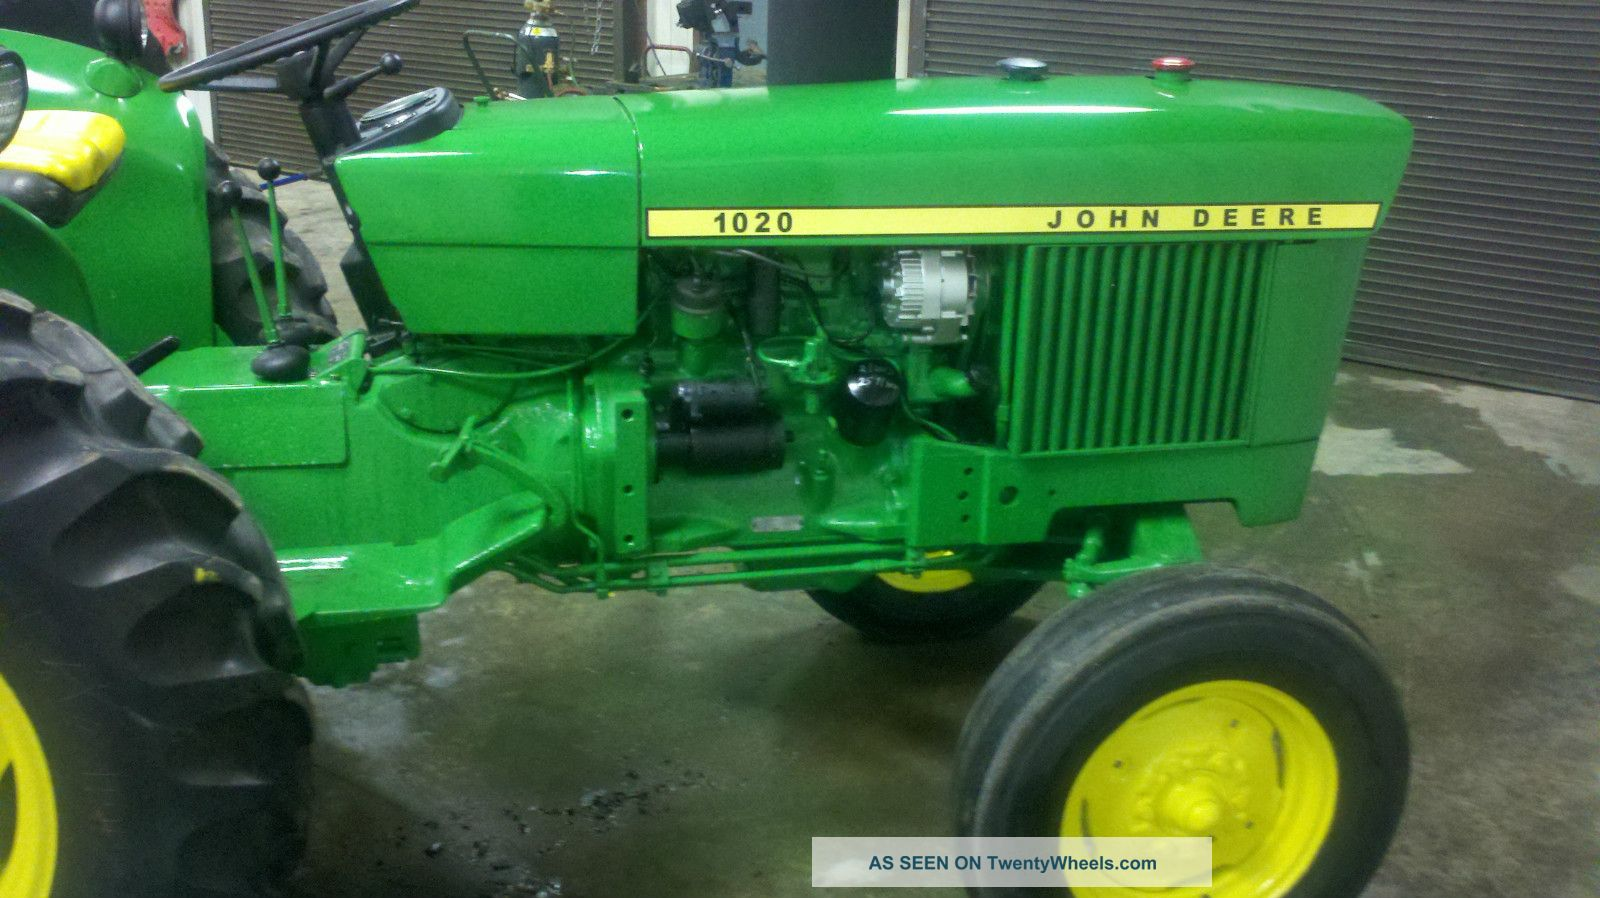 John Deere 1020 Tractor Manual Manuals Ignition Wiring Diagram 1010 Parts Yesterdays Tractors